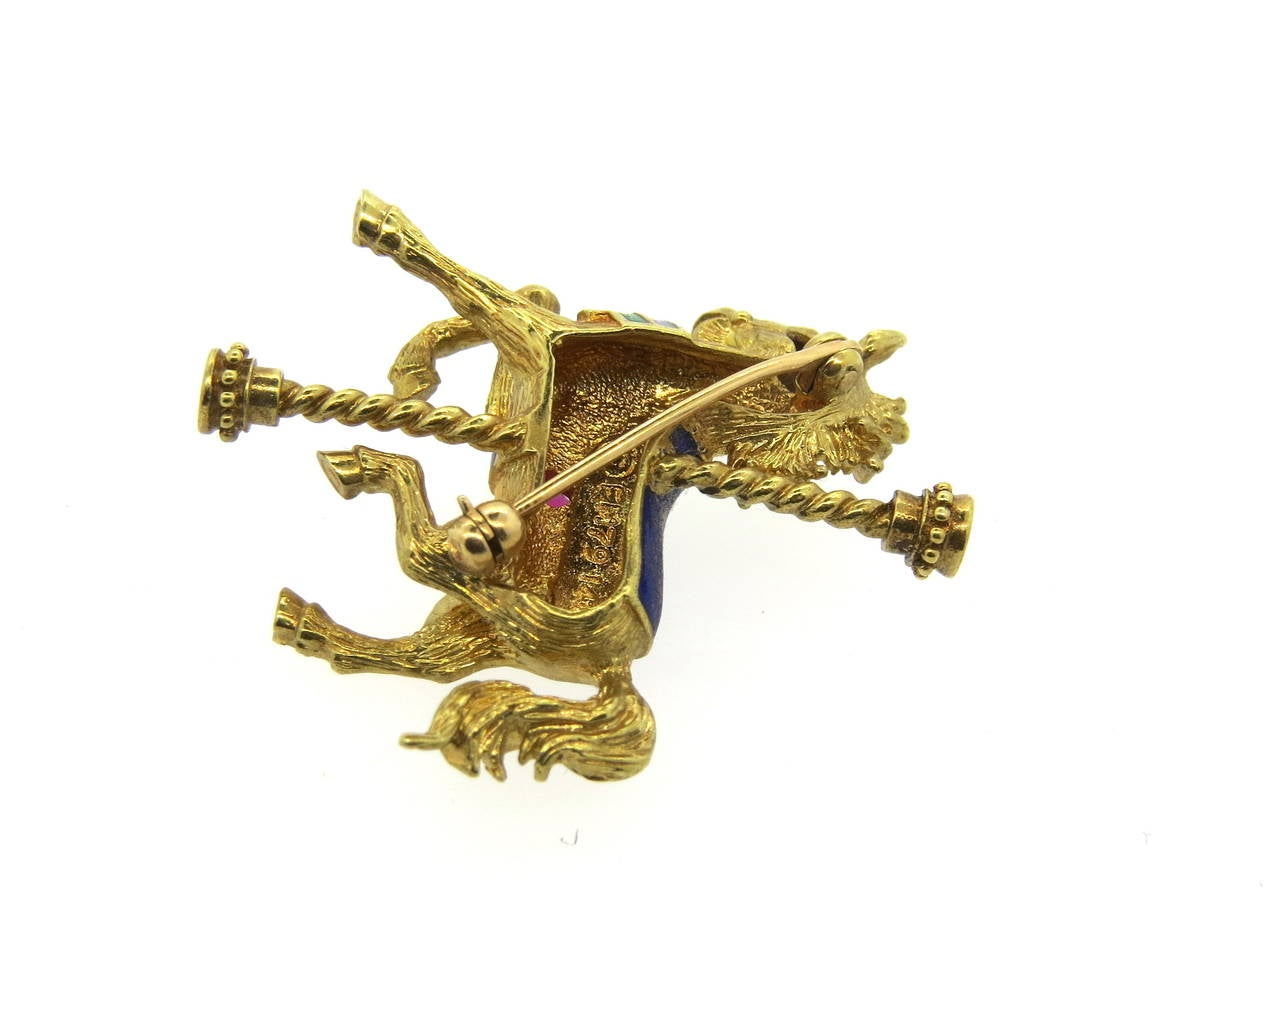 1970s vintage 14k gold carousel brooch, depicting a horse, decorated with enamel and ruby. Brooch measures 30mm x 34mm. Weight of the piece - 9.4 grams